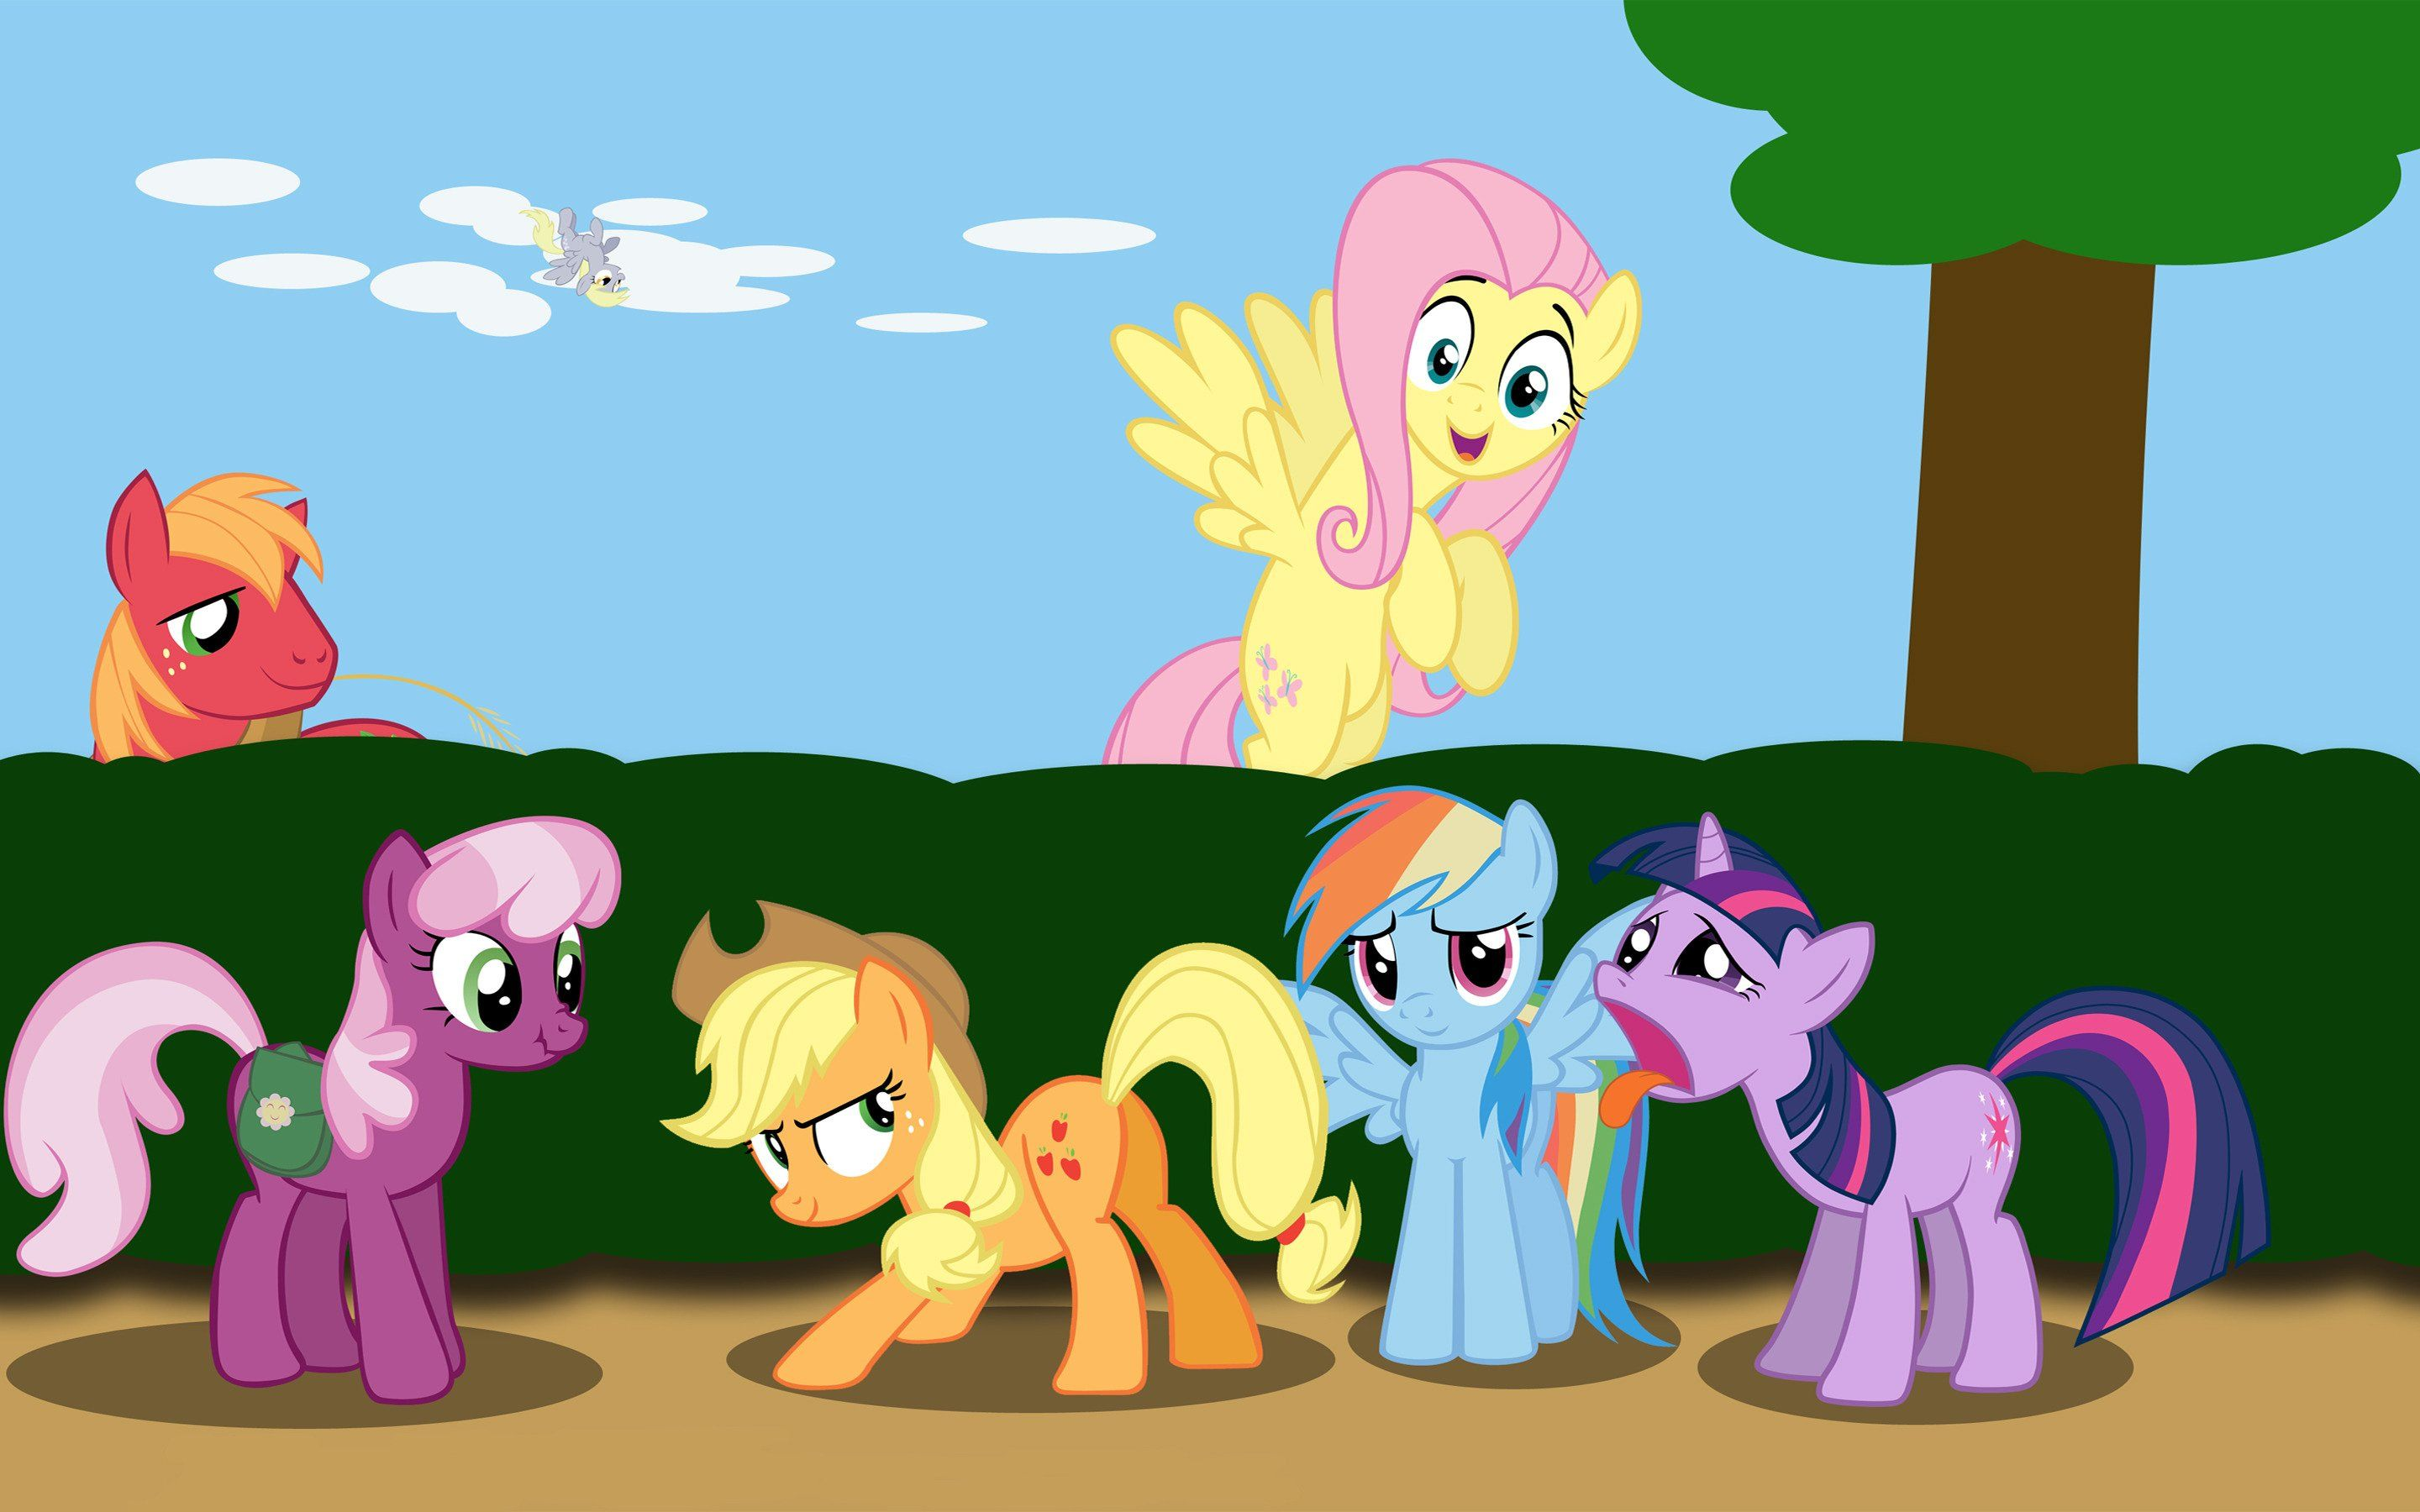 Big My Little Pony Wallpapers Top Free Big My Little Pony